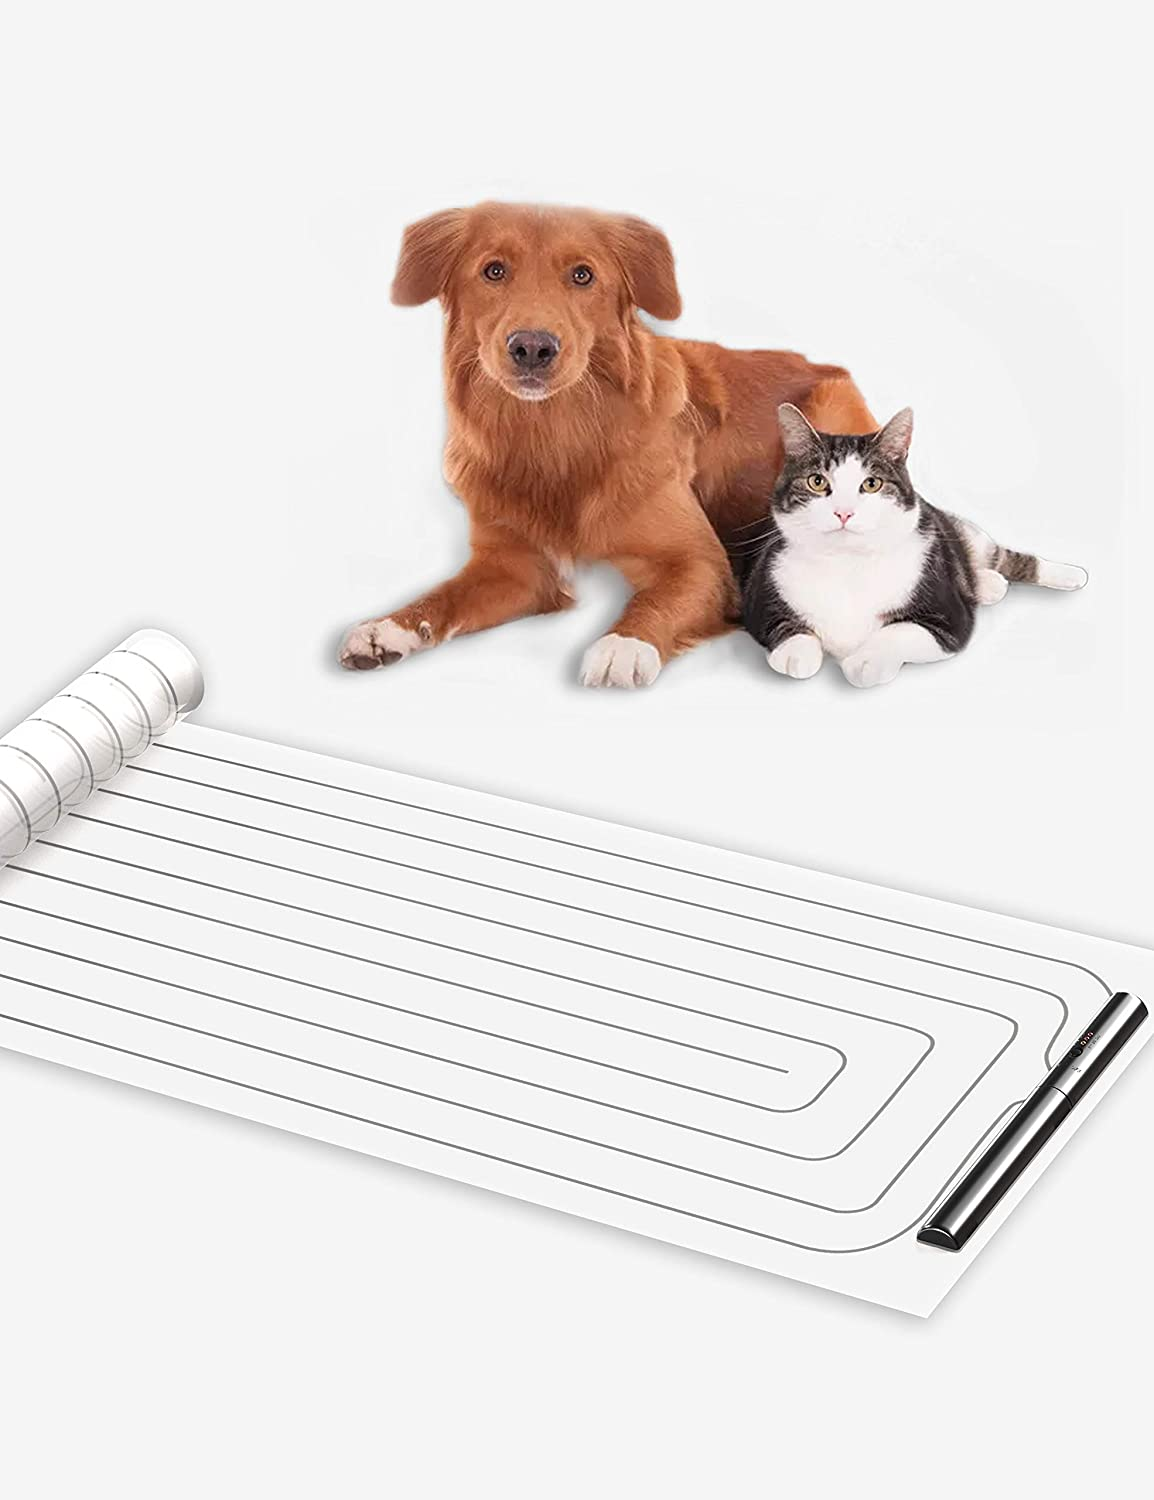 Cobito Scat Shock Mat for Dogs and Cats, Pet Electronic Training Pad, Couch Size, Keep Pets Off Furniture, Indoor Use for Sofa, Couch, Doorways